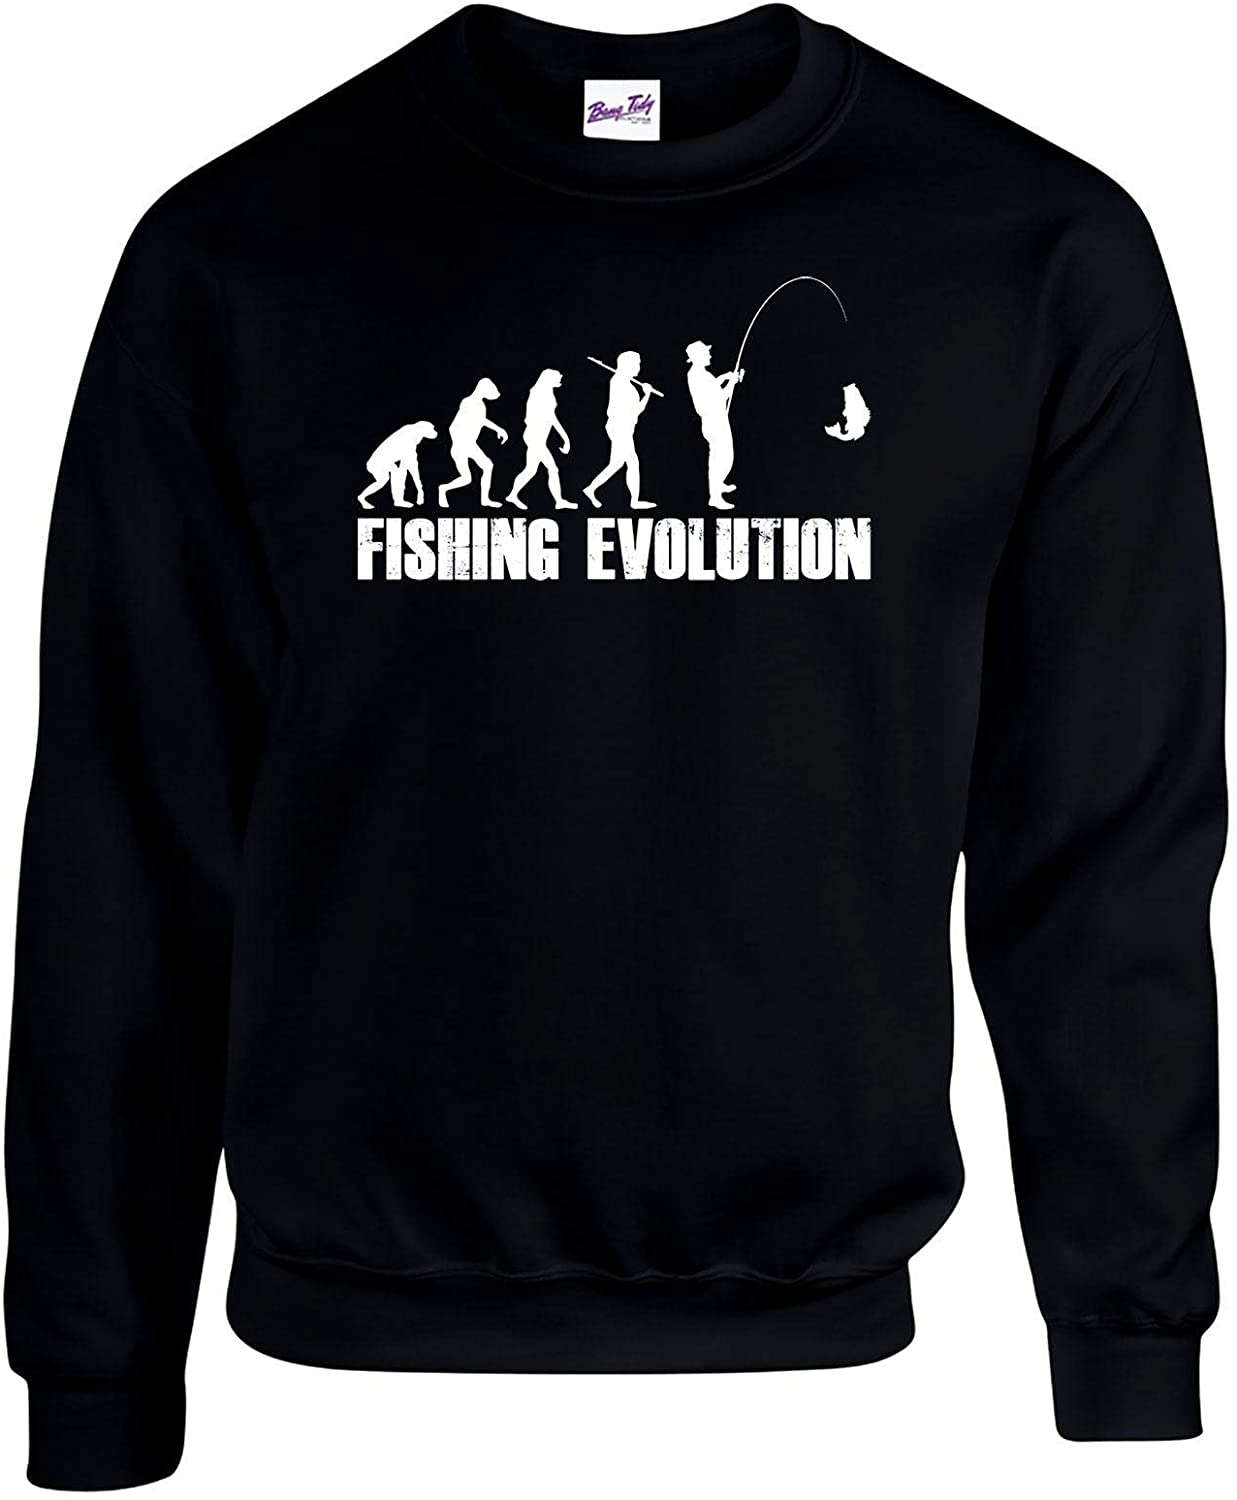 Fishing Sweatshirts Jumpers - Evolution Fishermen Anglers Clothing Gifts for Men